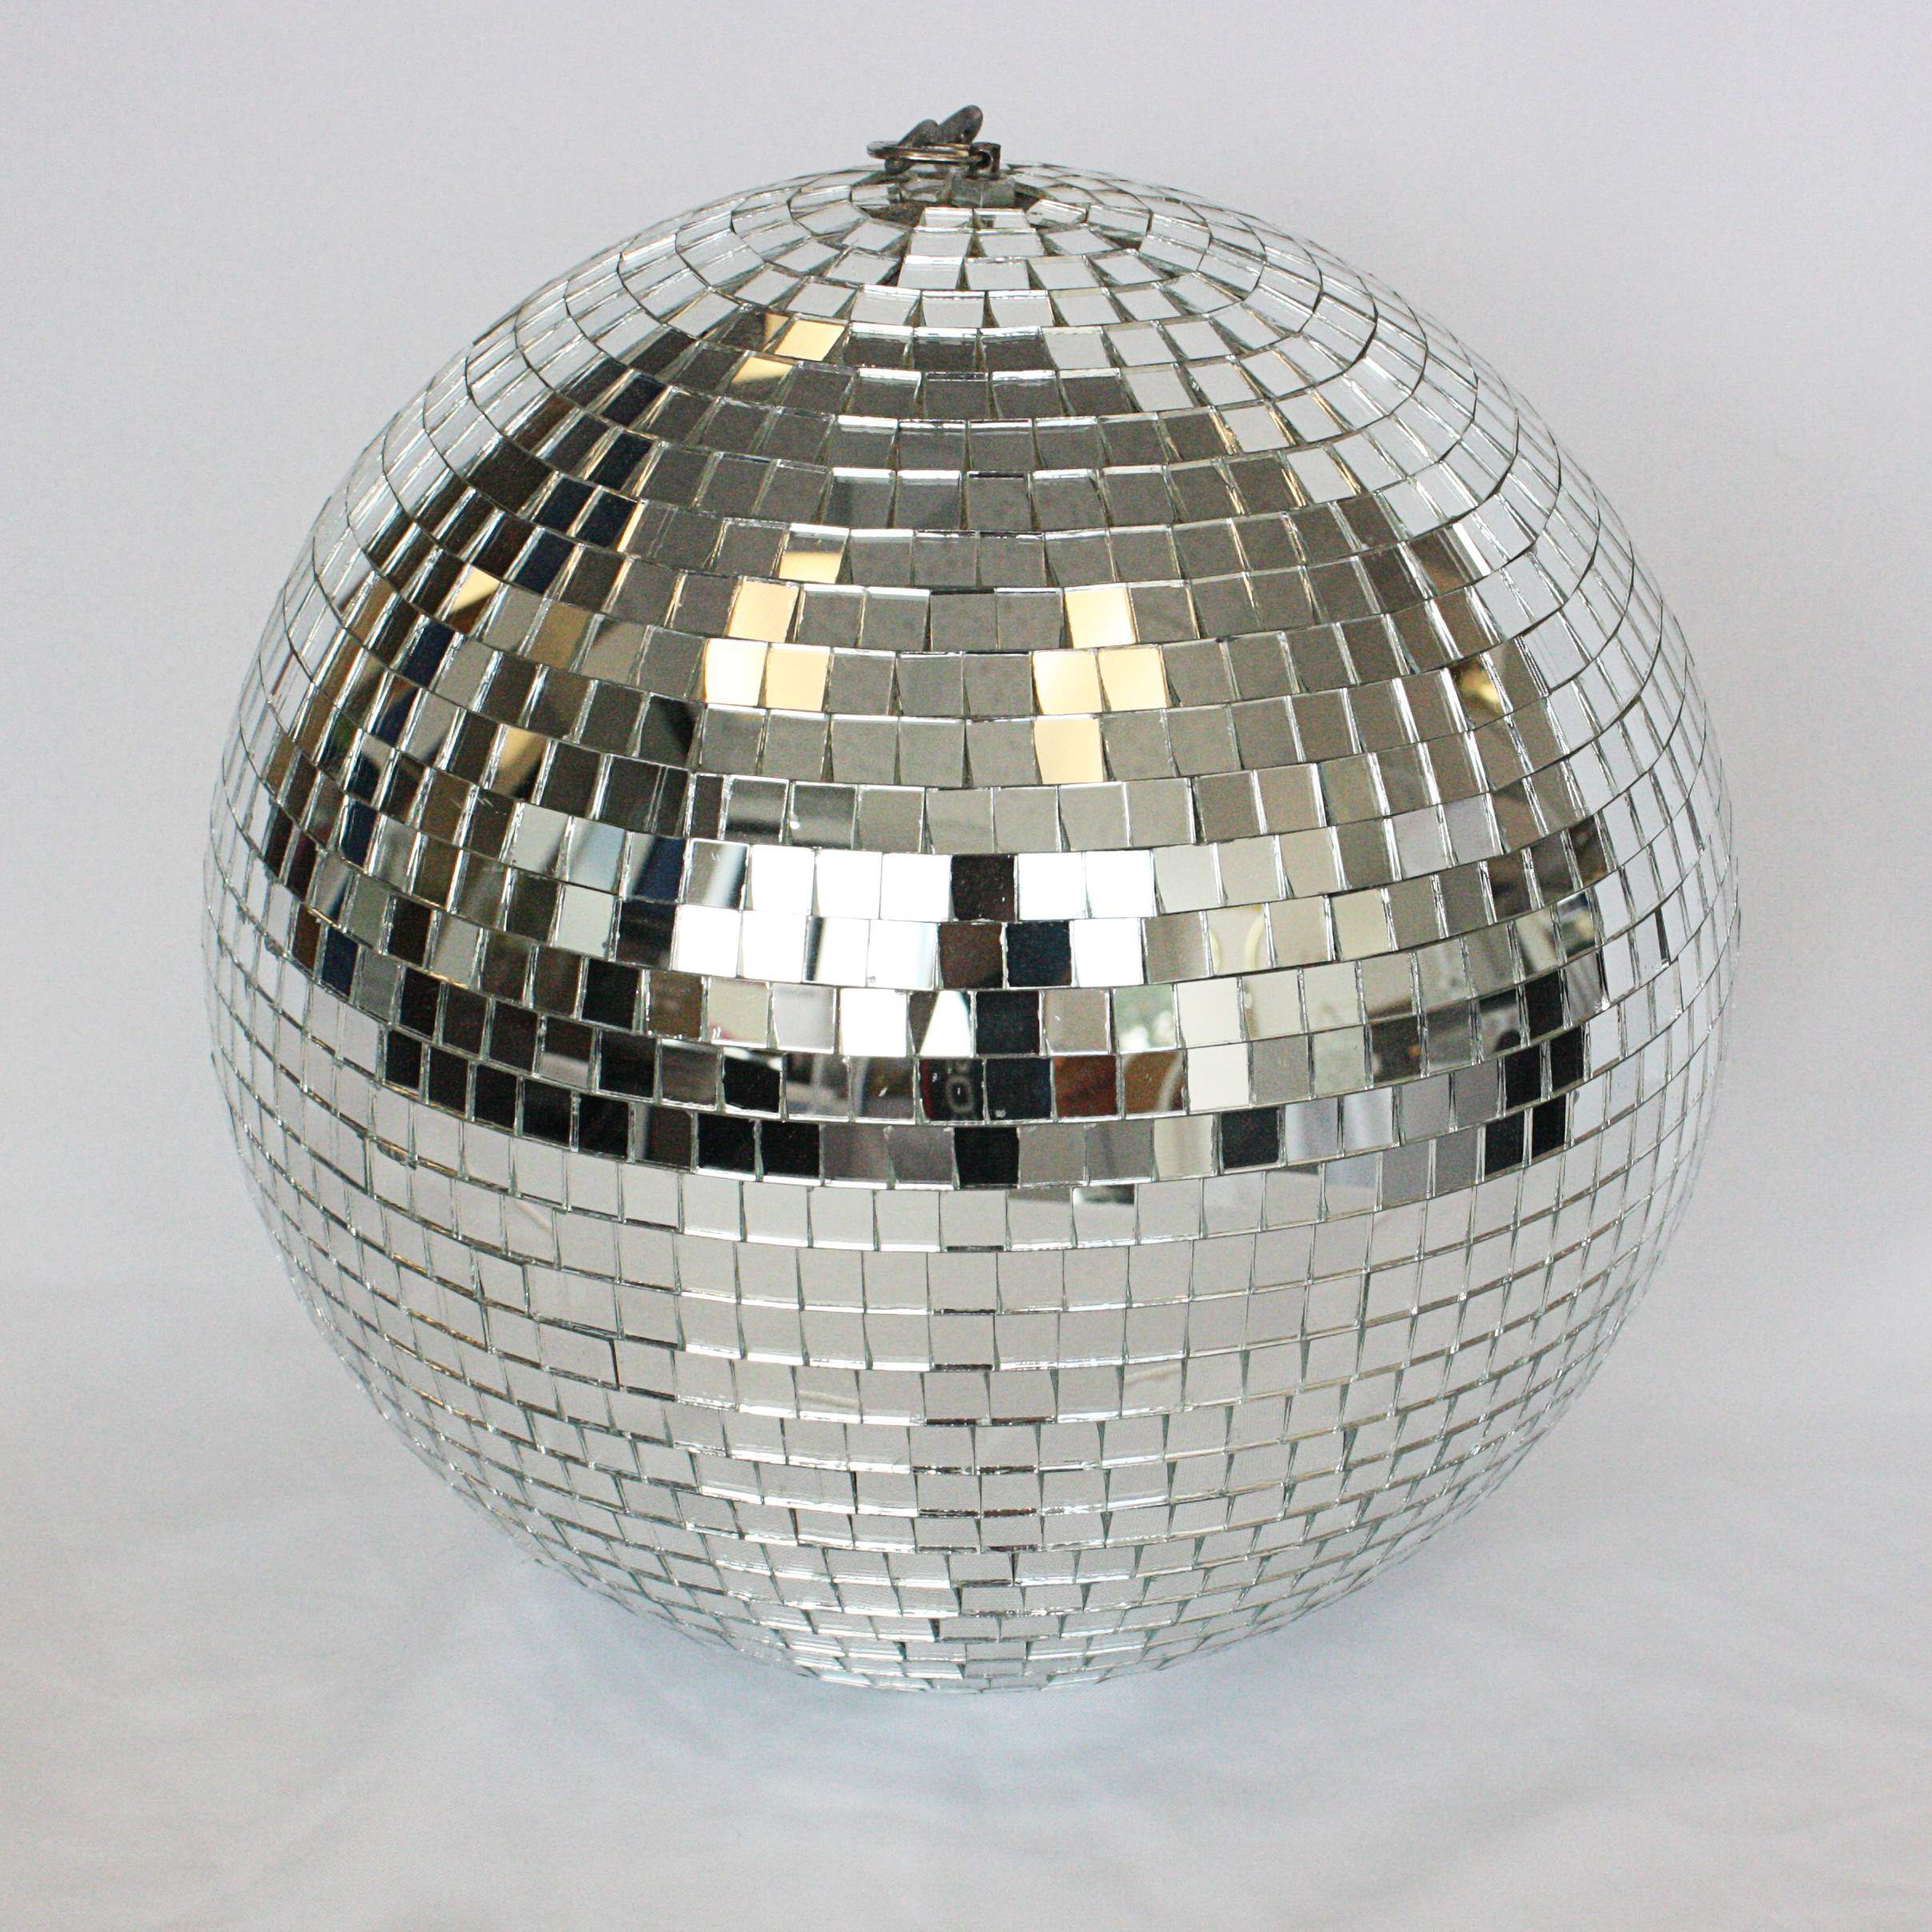 Mirror Ball w/lights